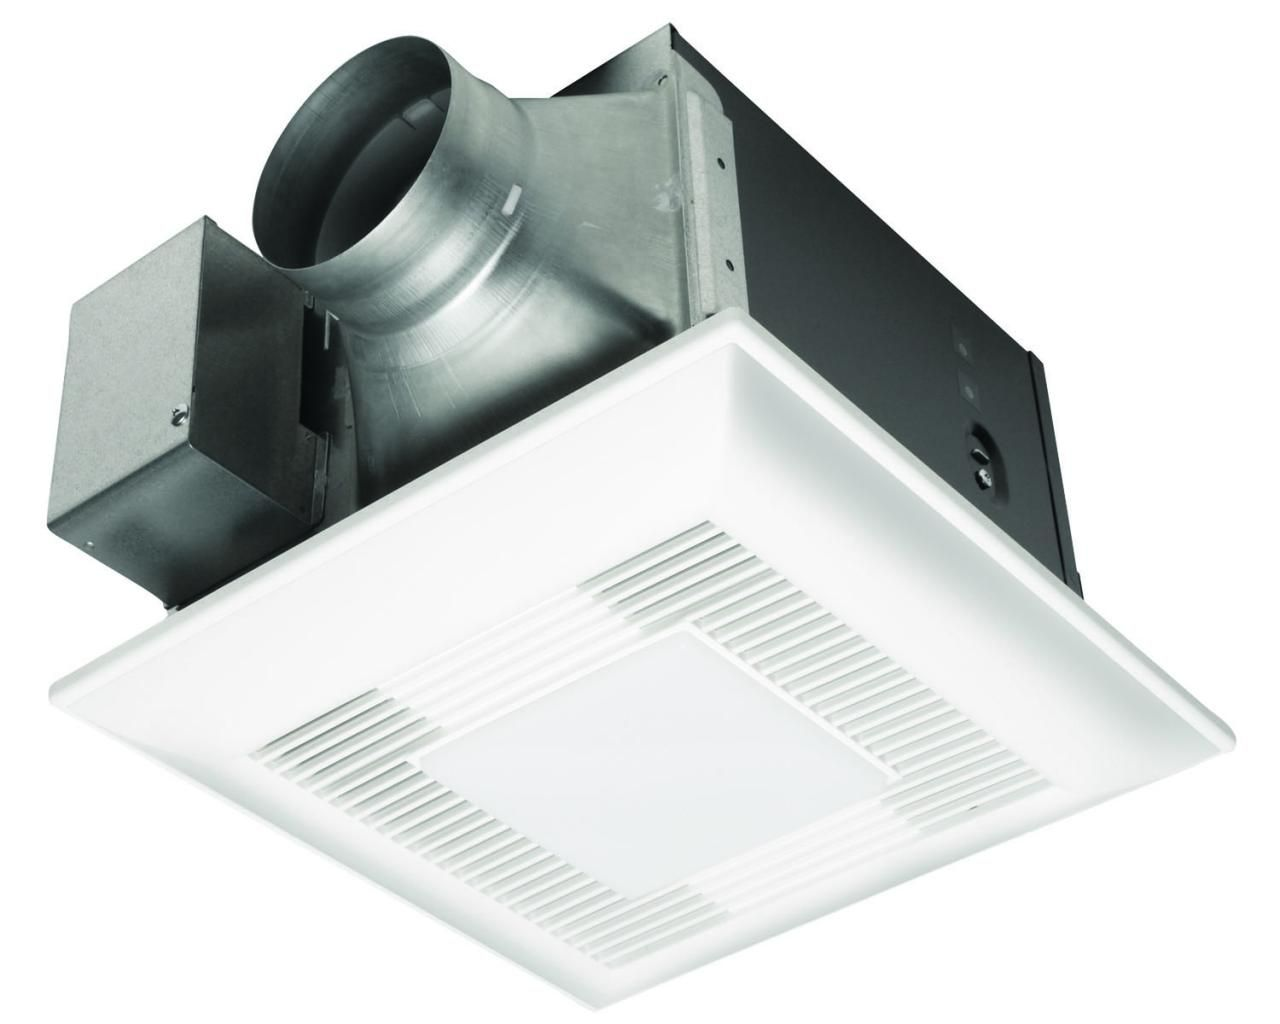 Fasco bathroom exhaust fan cover bathroom exclusiv pinterest fasco bathroom exhaust fan cover bathroom exclusiv pinterest bathroom exhaust fan aloadofball Images